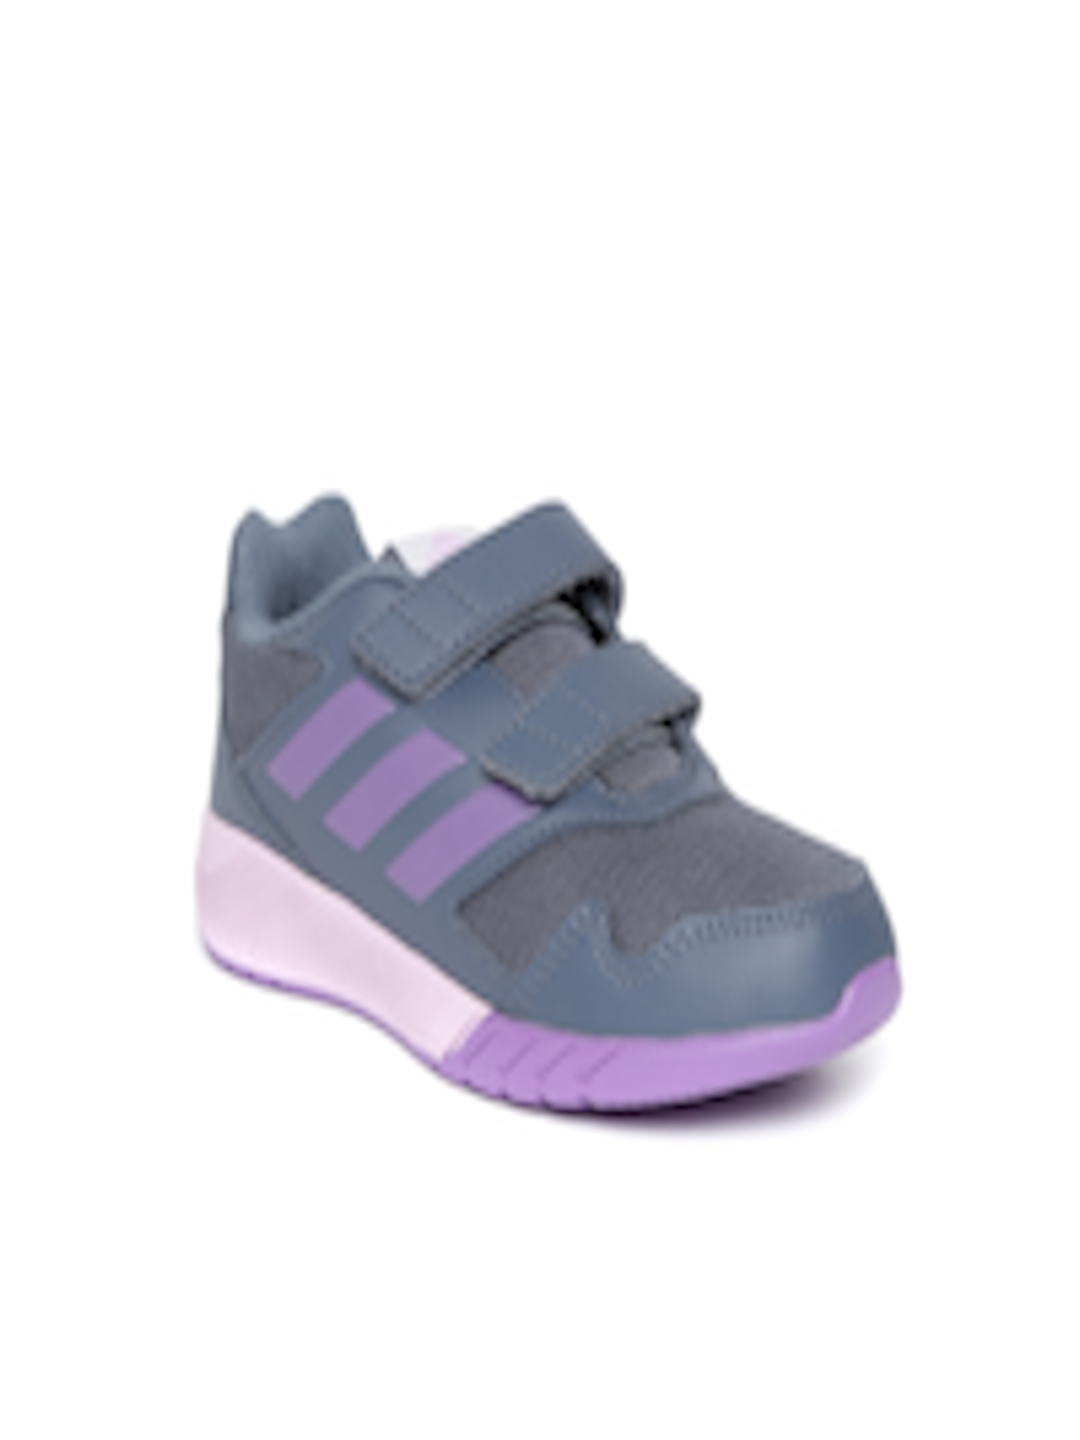 the best attitude 68503 8f559 Buy Adidas Kids Navy Blue ALTARUN CF Training Shoes - Sports Shoes for  Unisex 6841855  Myntra